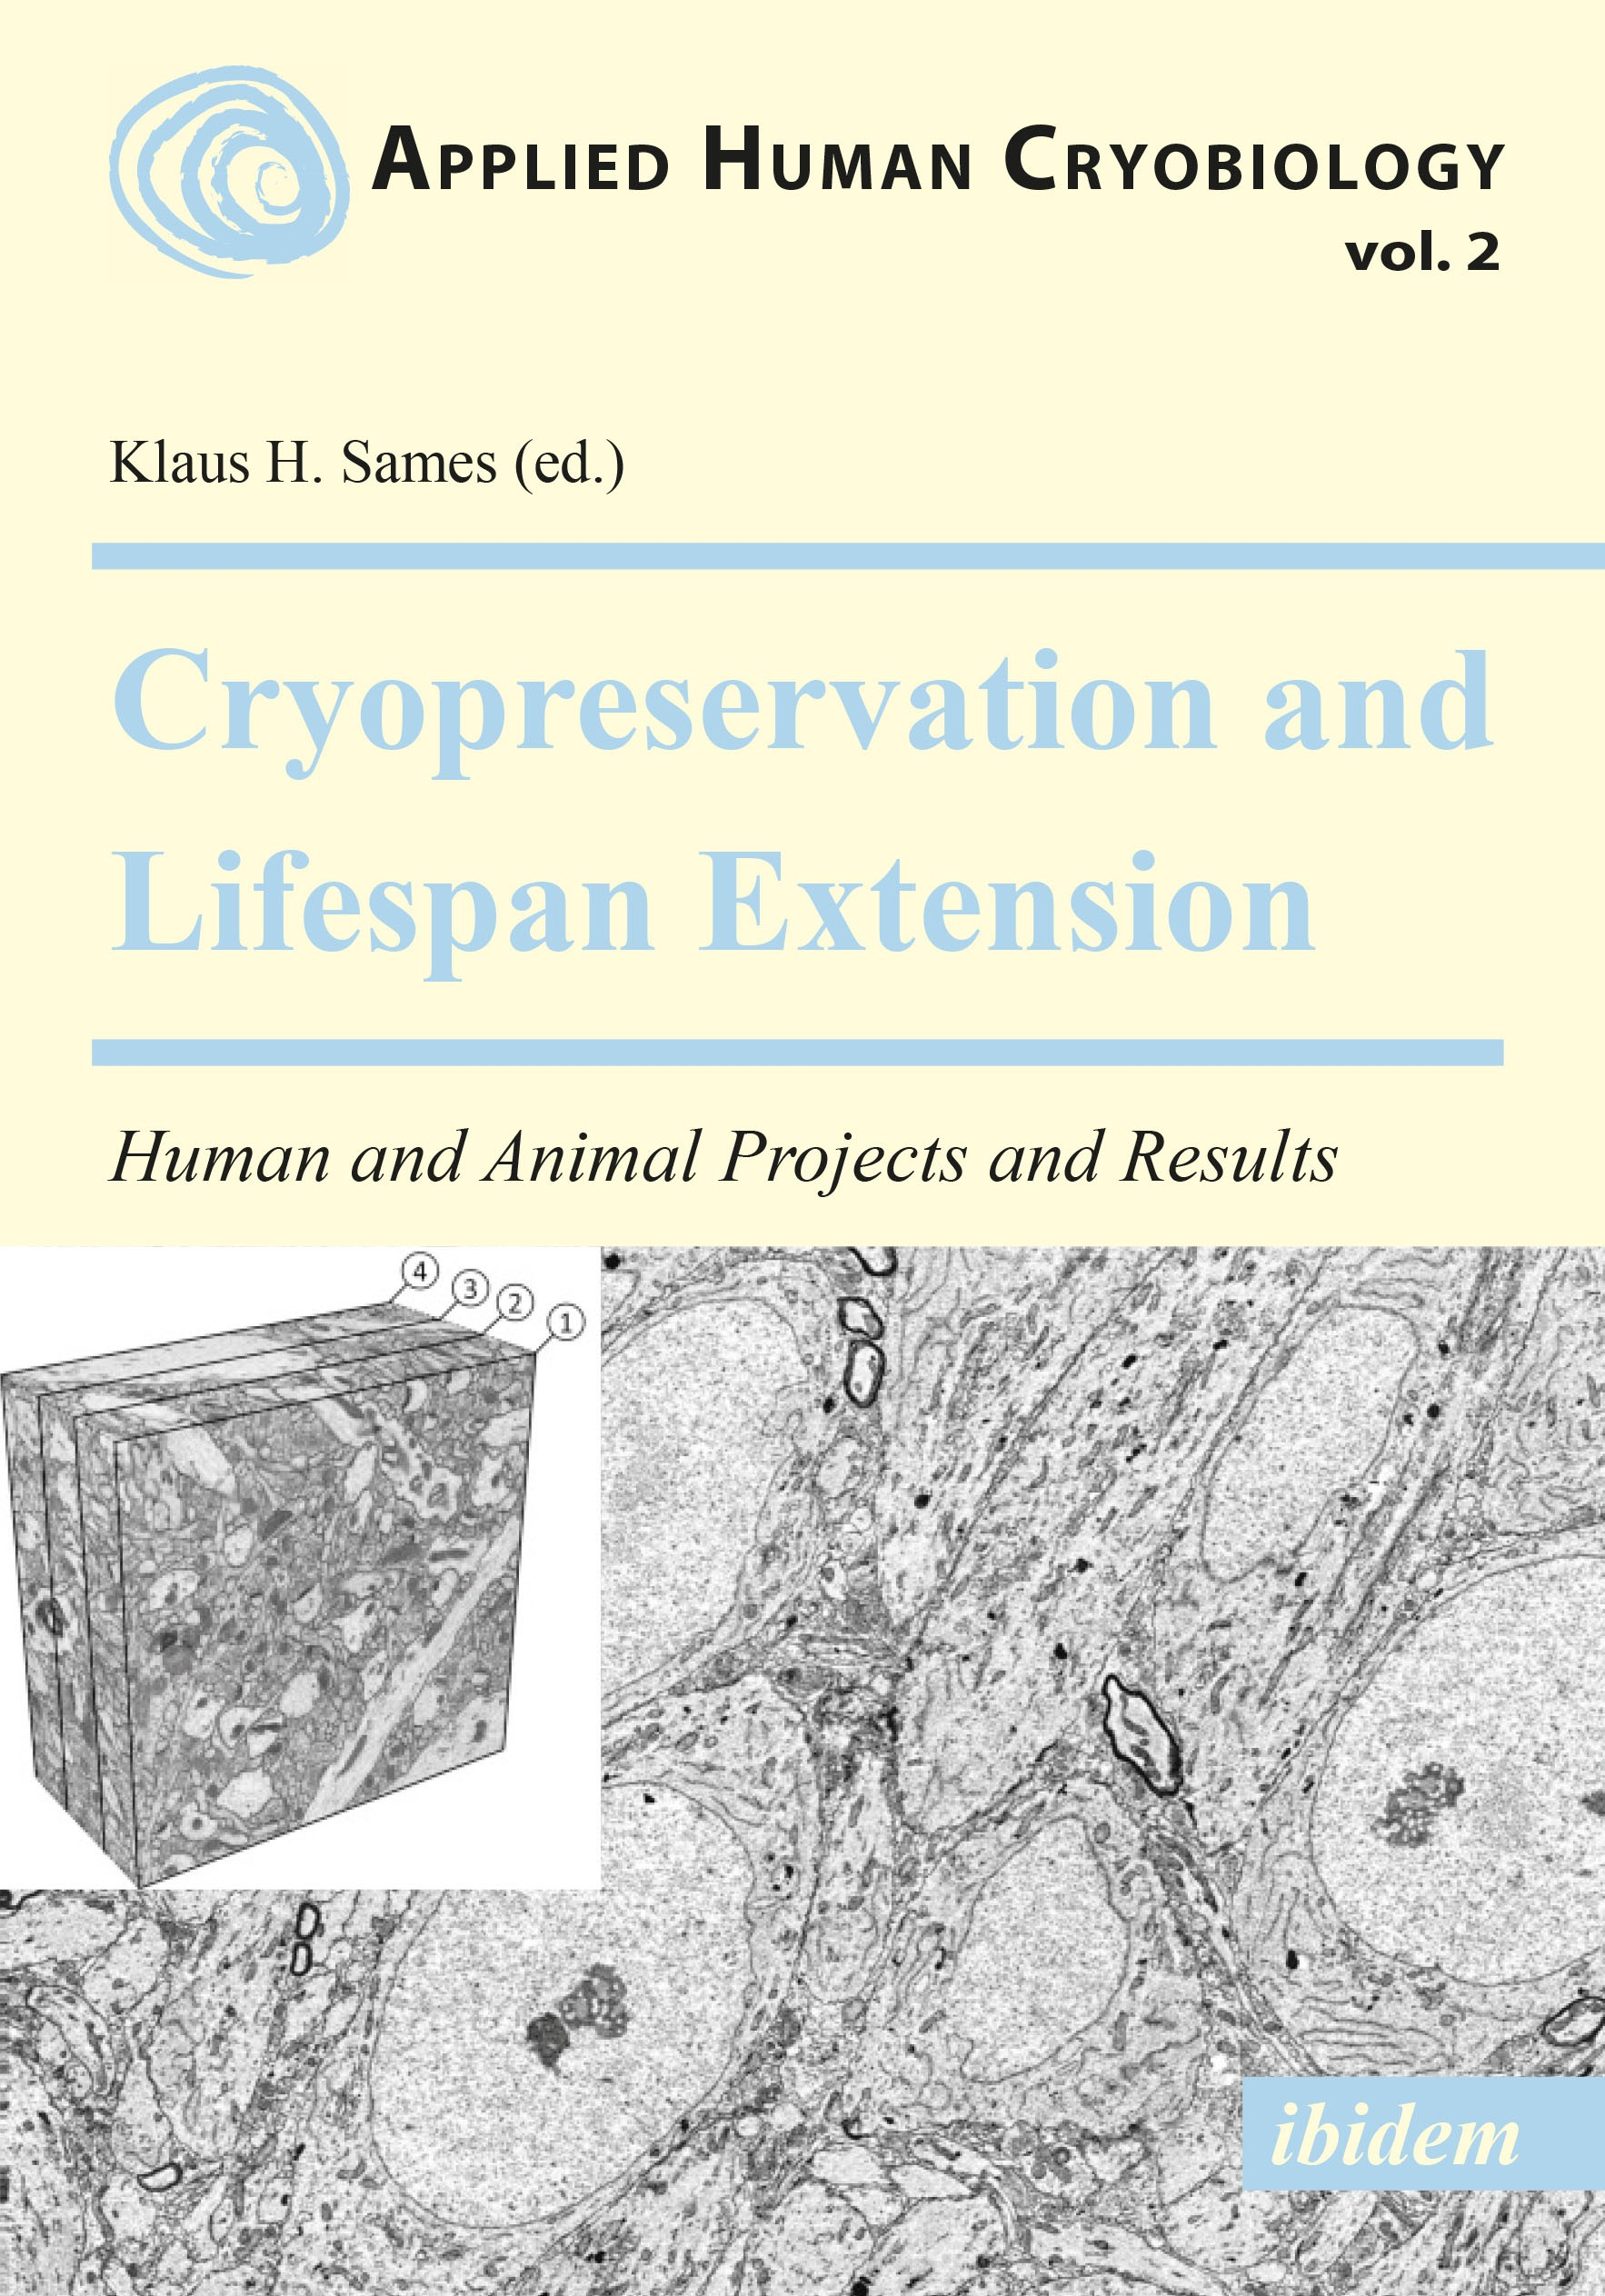 Cryopreservation and Lifespan Extension